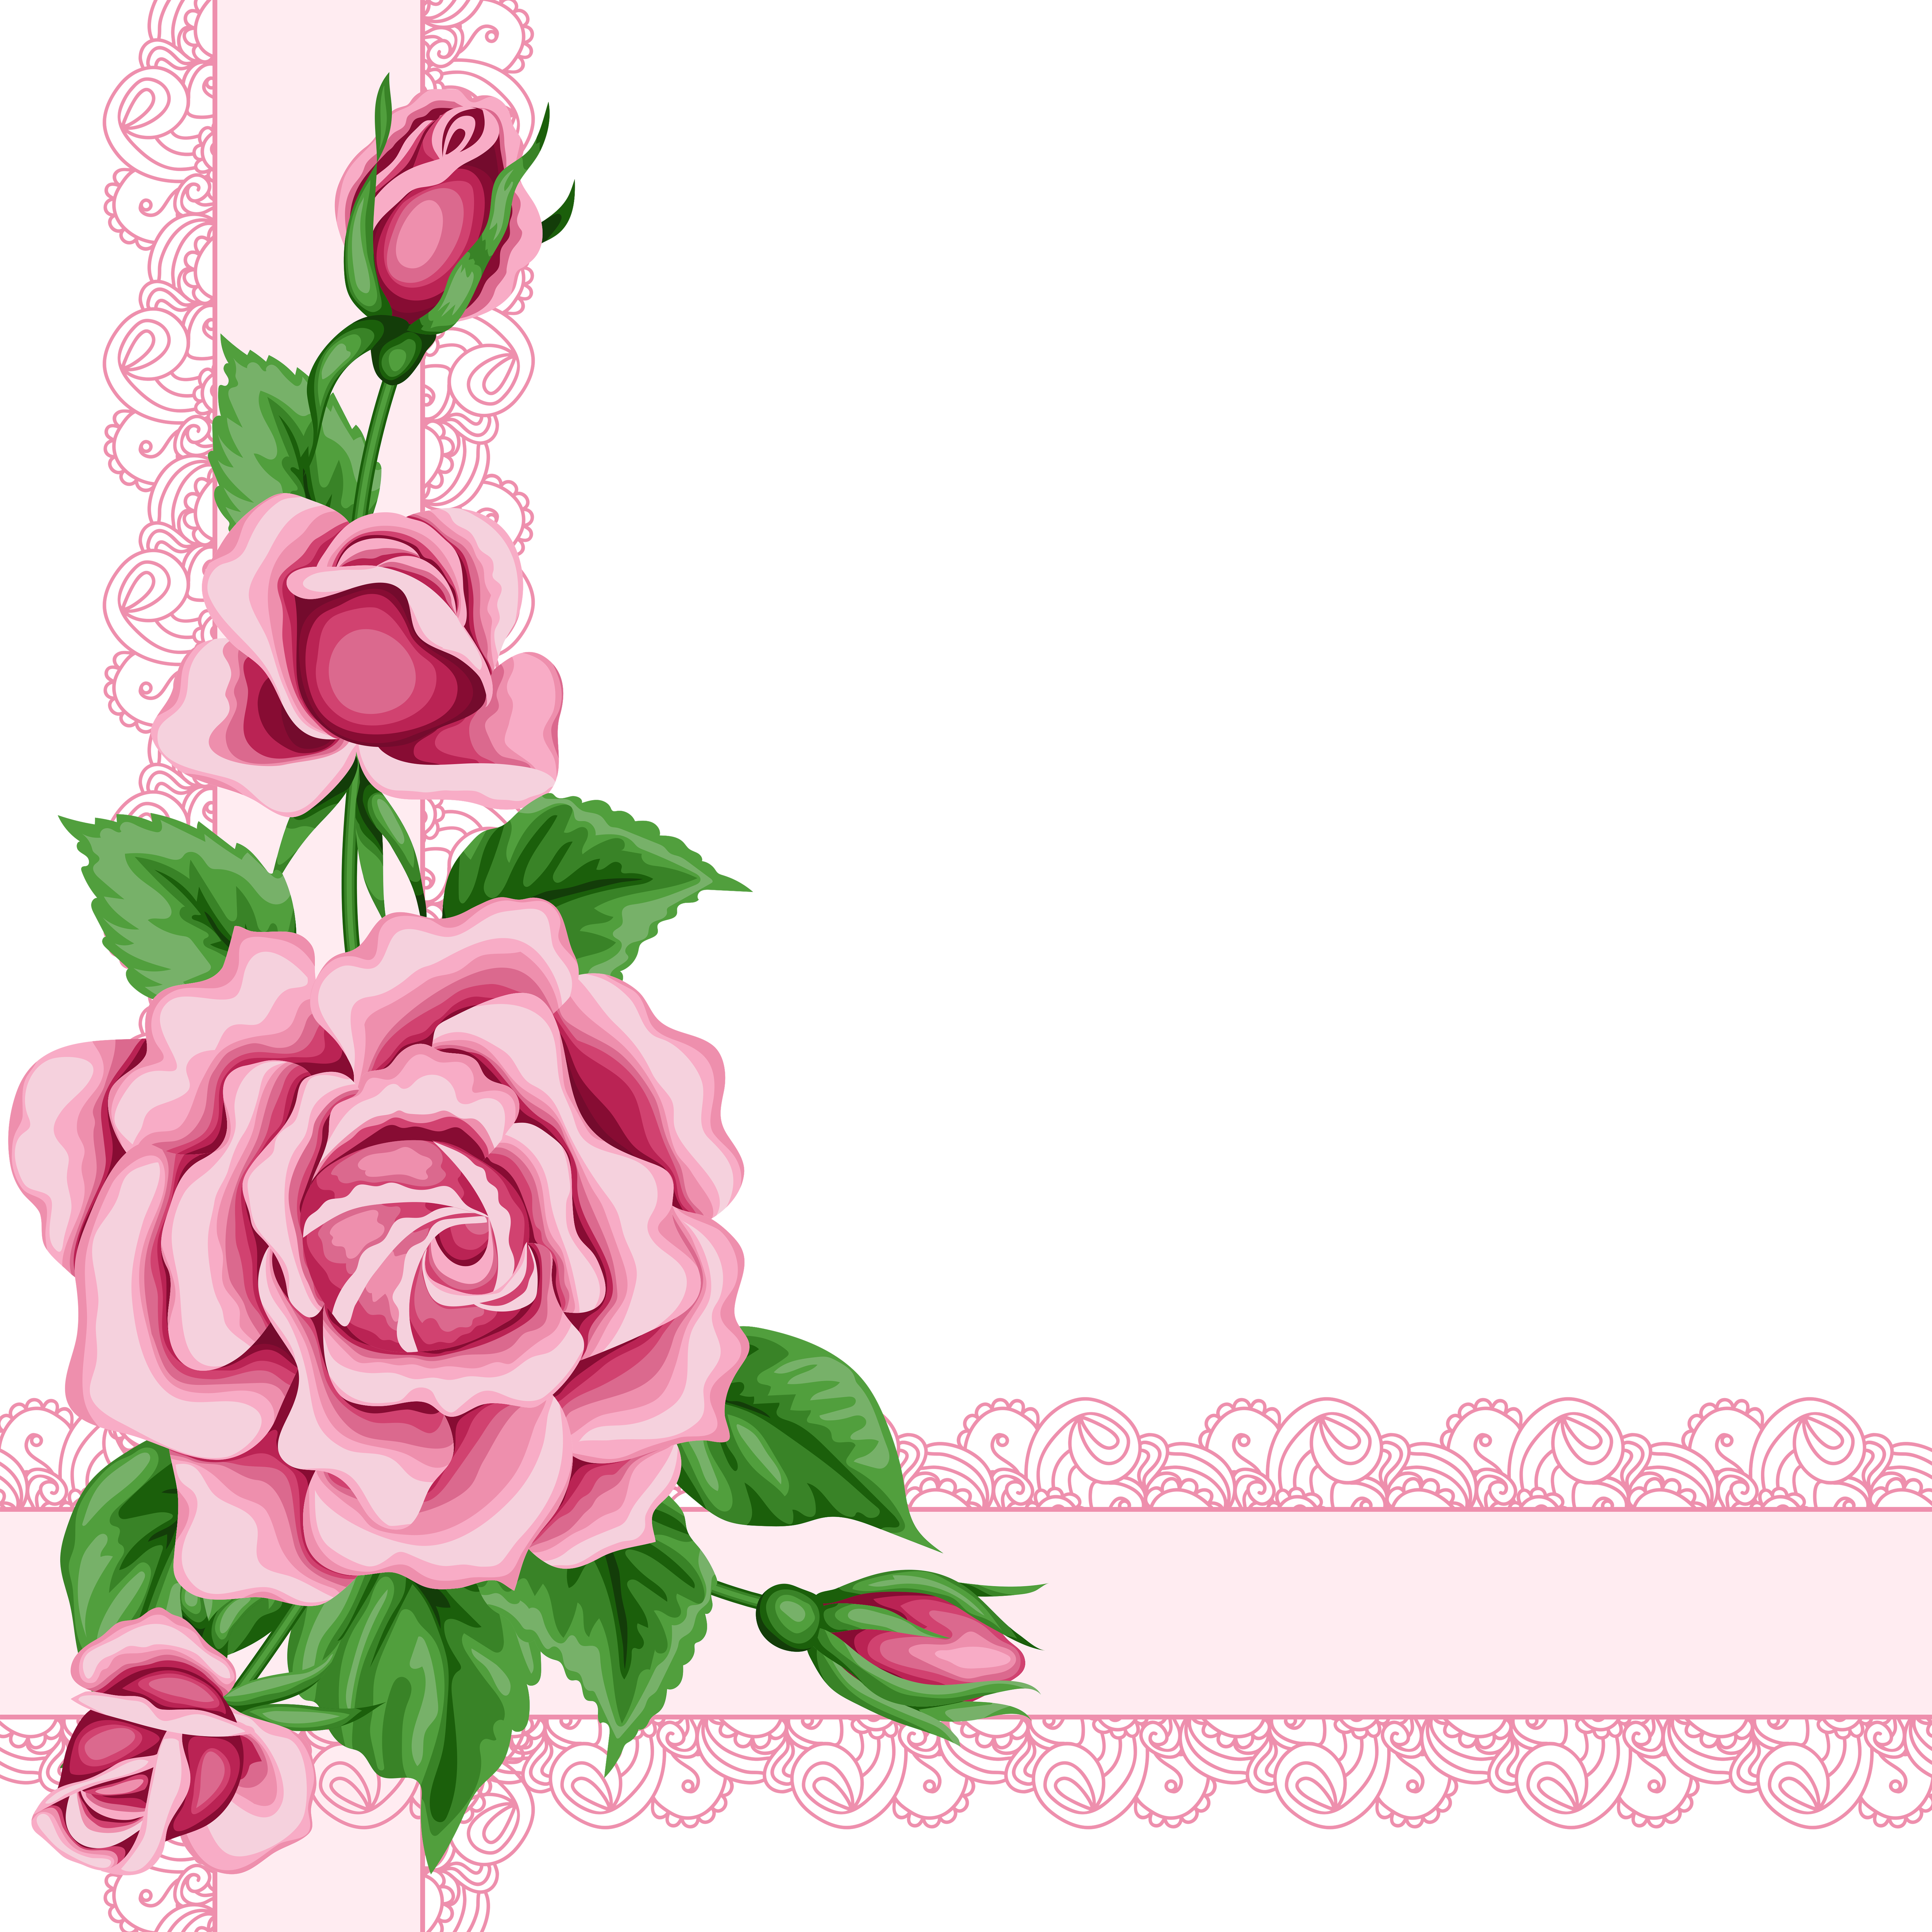 Pink Rose Flower Border Free Download PNG HQ PNG Image